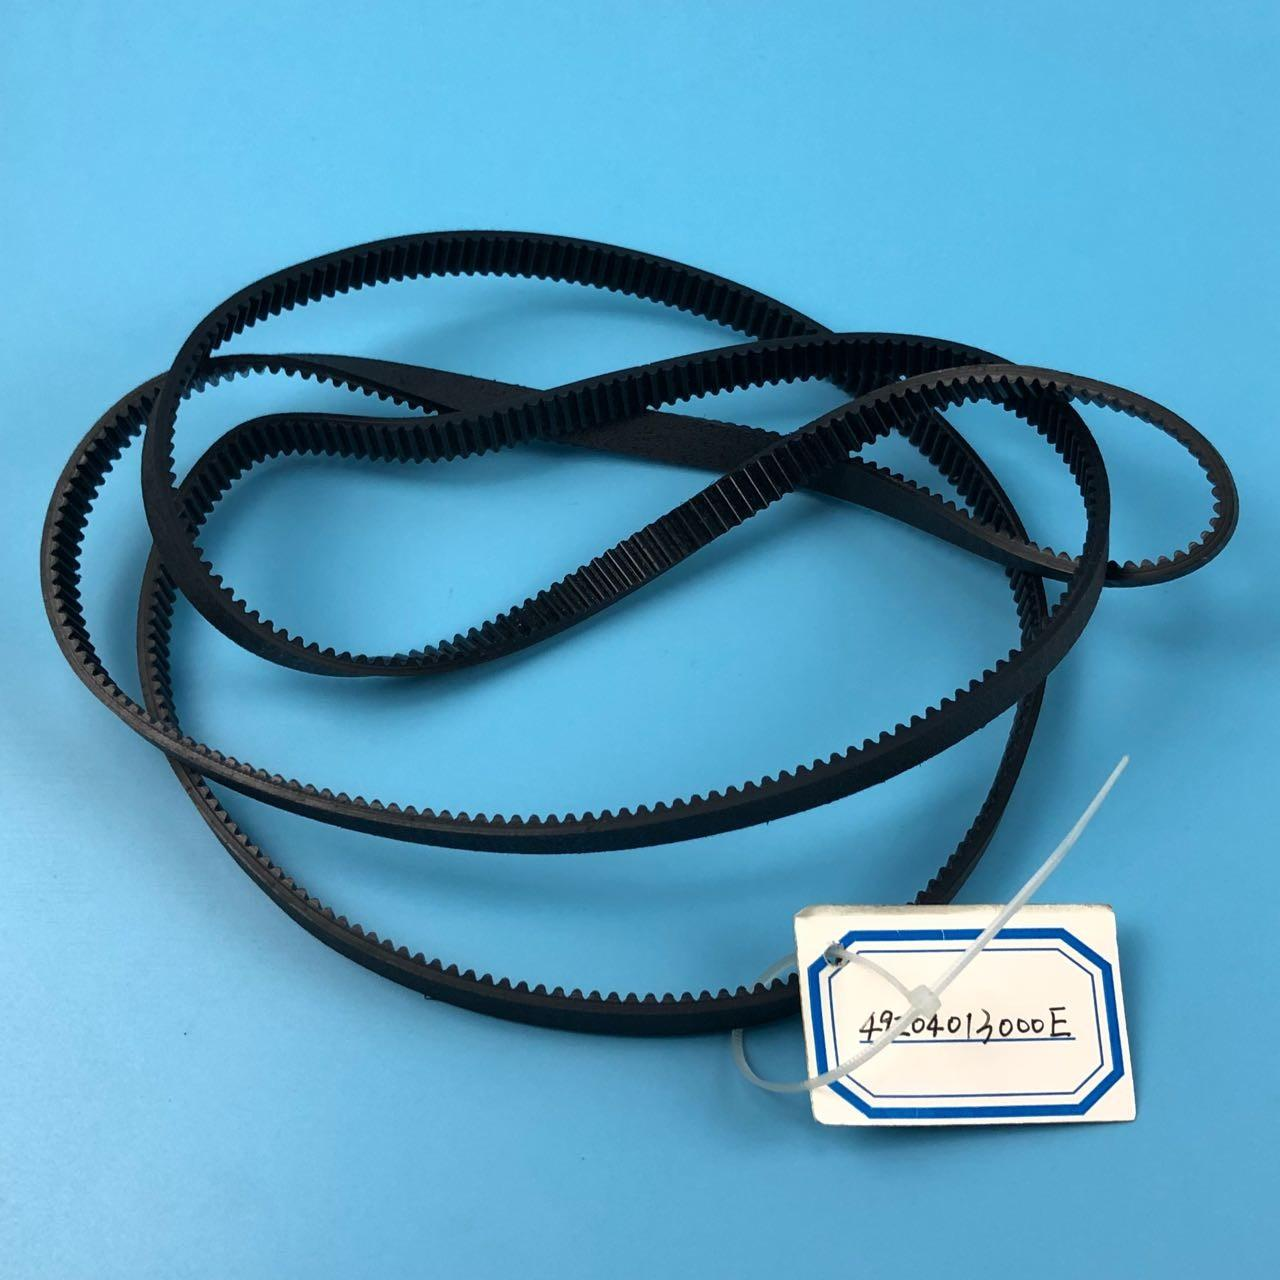 China ATM Parts 49204013000E Diebold Spare Parts Diebold Opteva 5 Height Belt 49-204013-000E Standard Sized factory